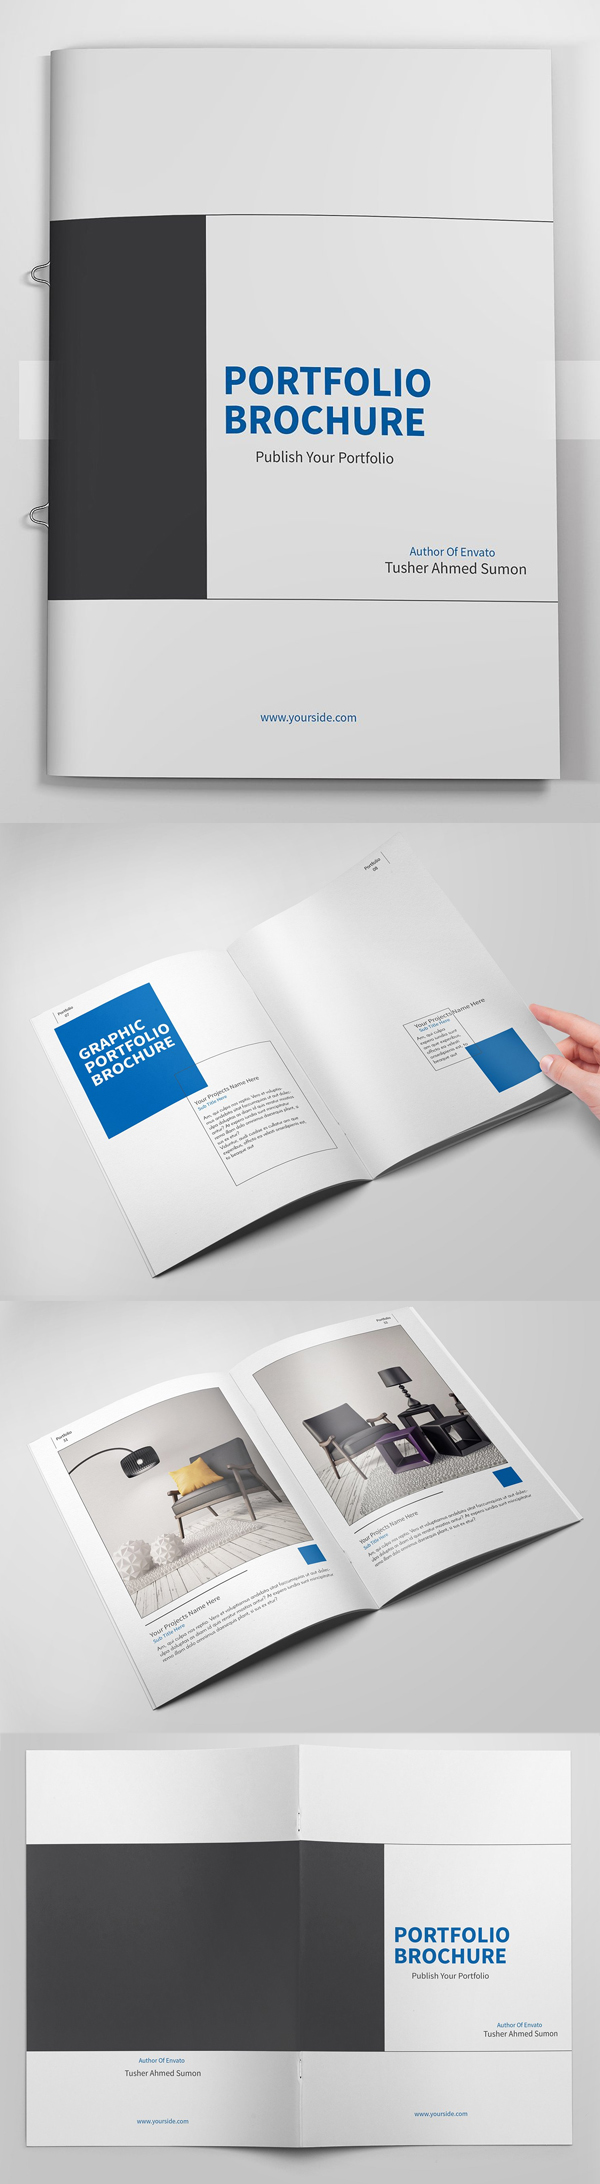 100 Professional Corporate Brochure Templates - 68